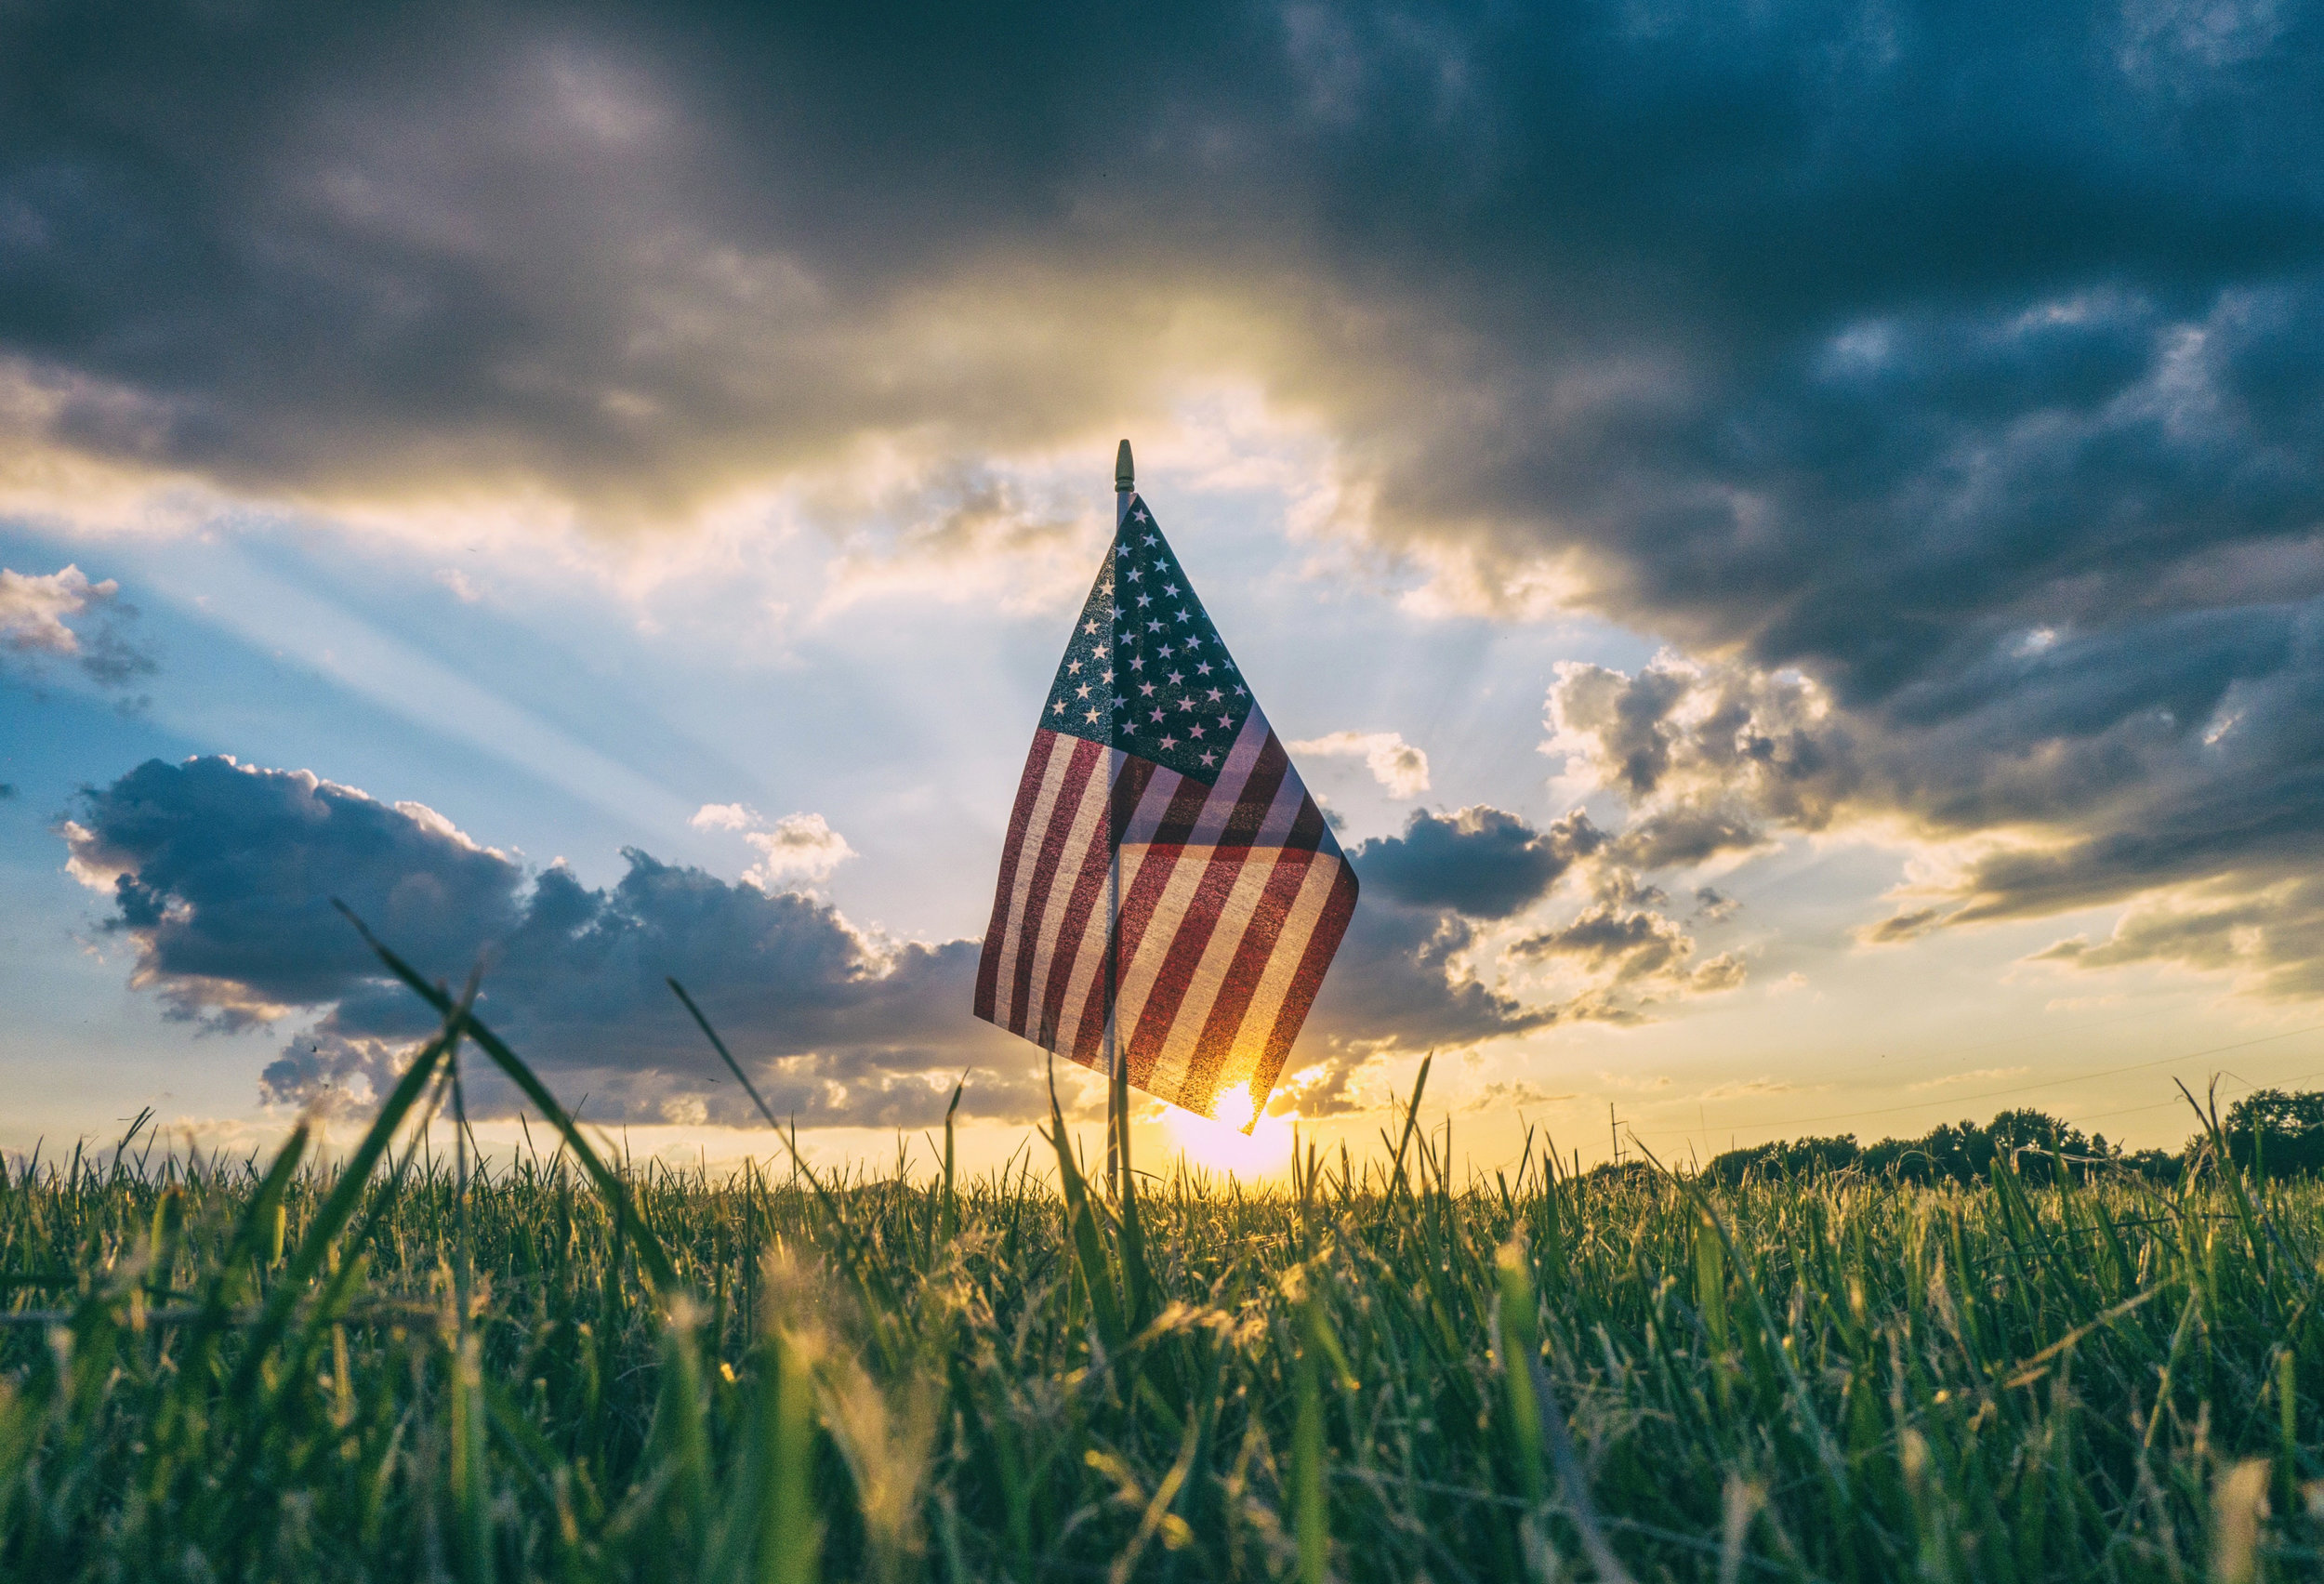 sunset-beyond-the-american-flag-celebrating-4th-of-july-independence-day.jpg